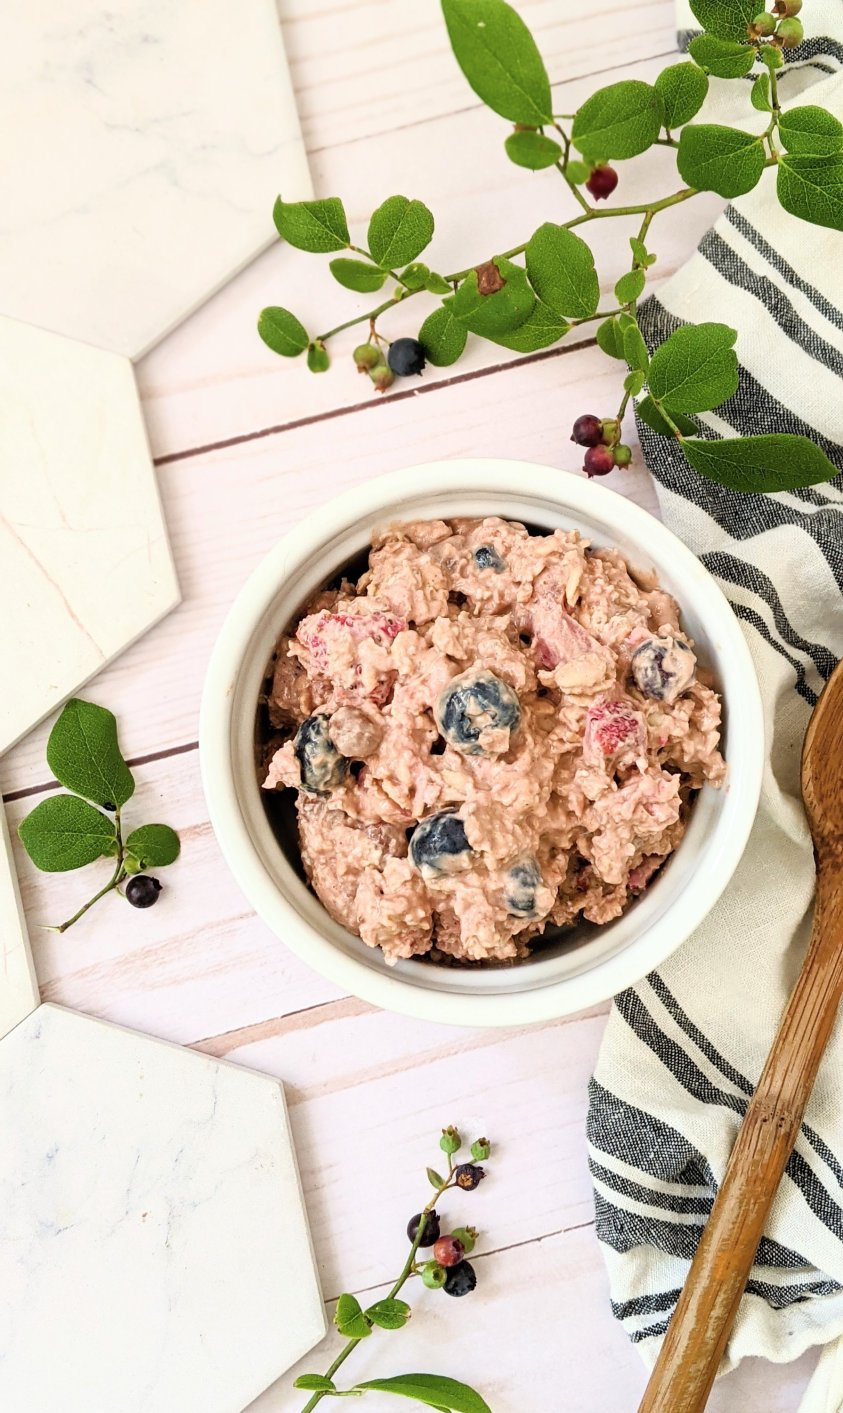 chocolate berry overnight oats recipe with blueberry strawberry cacao powder cocoa powder cinnamon and dairy free almond milk oat milk or nut milk